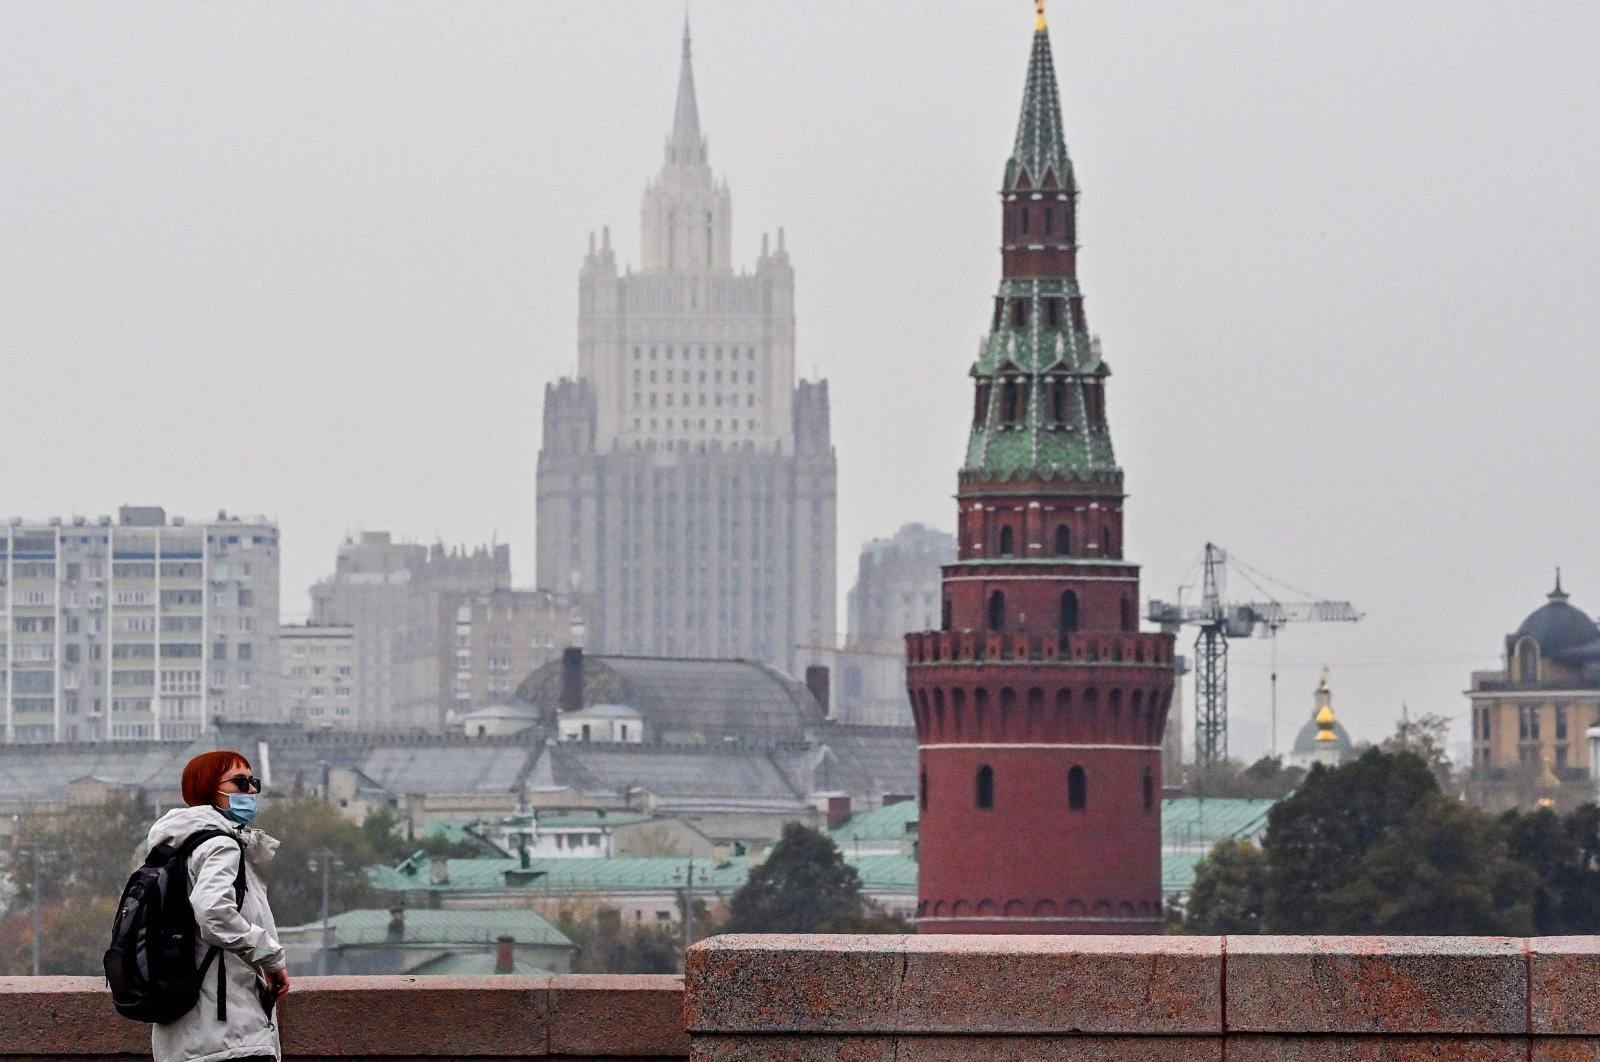 A woman wearing a face mask to protect against the coronavirus disease walks along a bridge in front of a tower of the Kremlin and the Russian Foreign Ministry building in the background in central Moscow on Oct. 13, 2020. (AFP Photo)